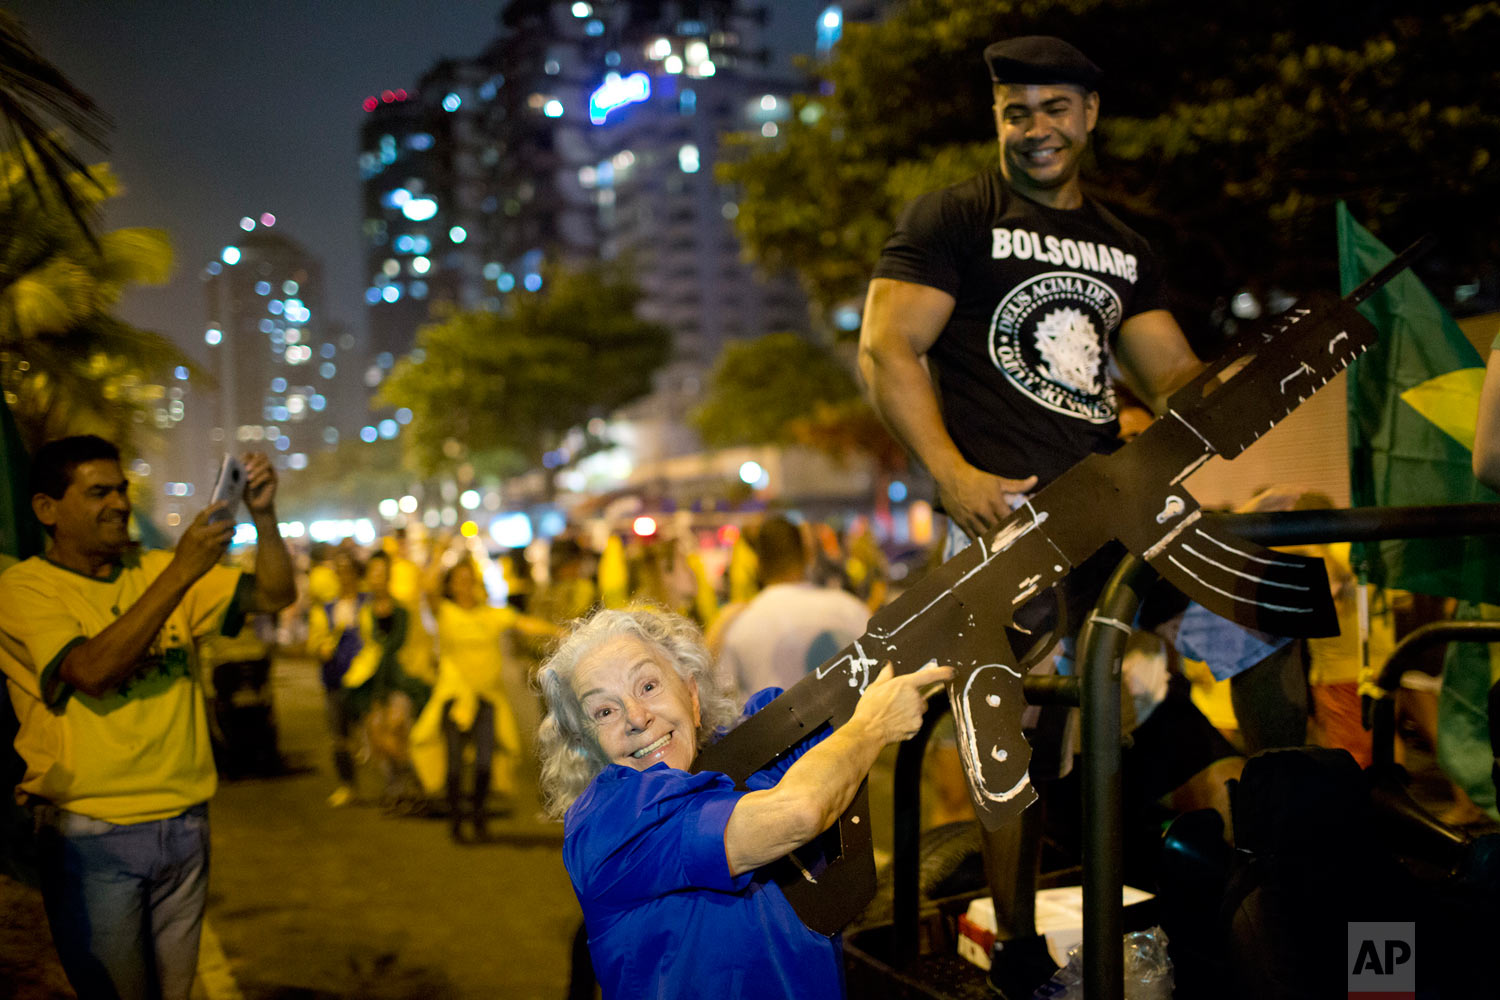 In this Oct. 28, 2018 photo, a supporter of presidential candidate Jair Bolsonaro poses for a photo with a mock rifle as she celebrates the election runoff results in Rio de Janeiro, Brazil. Brazil's Supreme Electoral Tribunal declared the right-leaning congressman the next president of Latin America's biggest country. (AP Photo/Silvia Izquierdo)